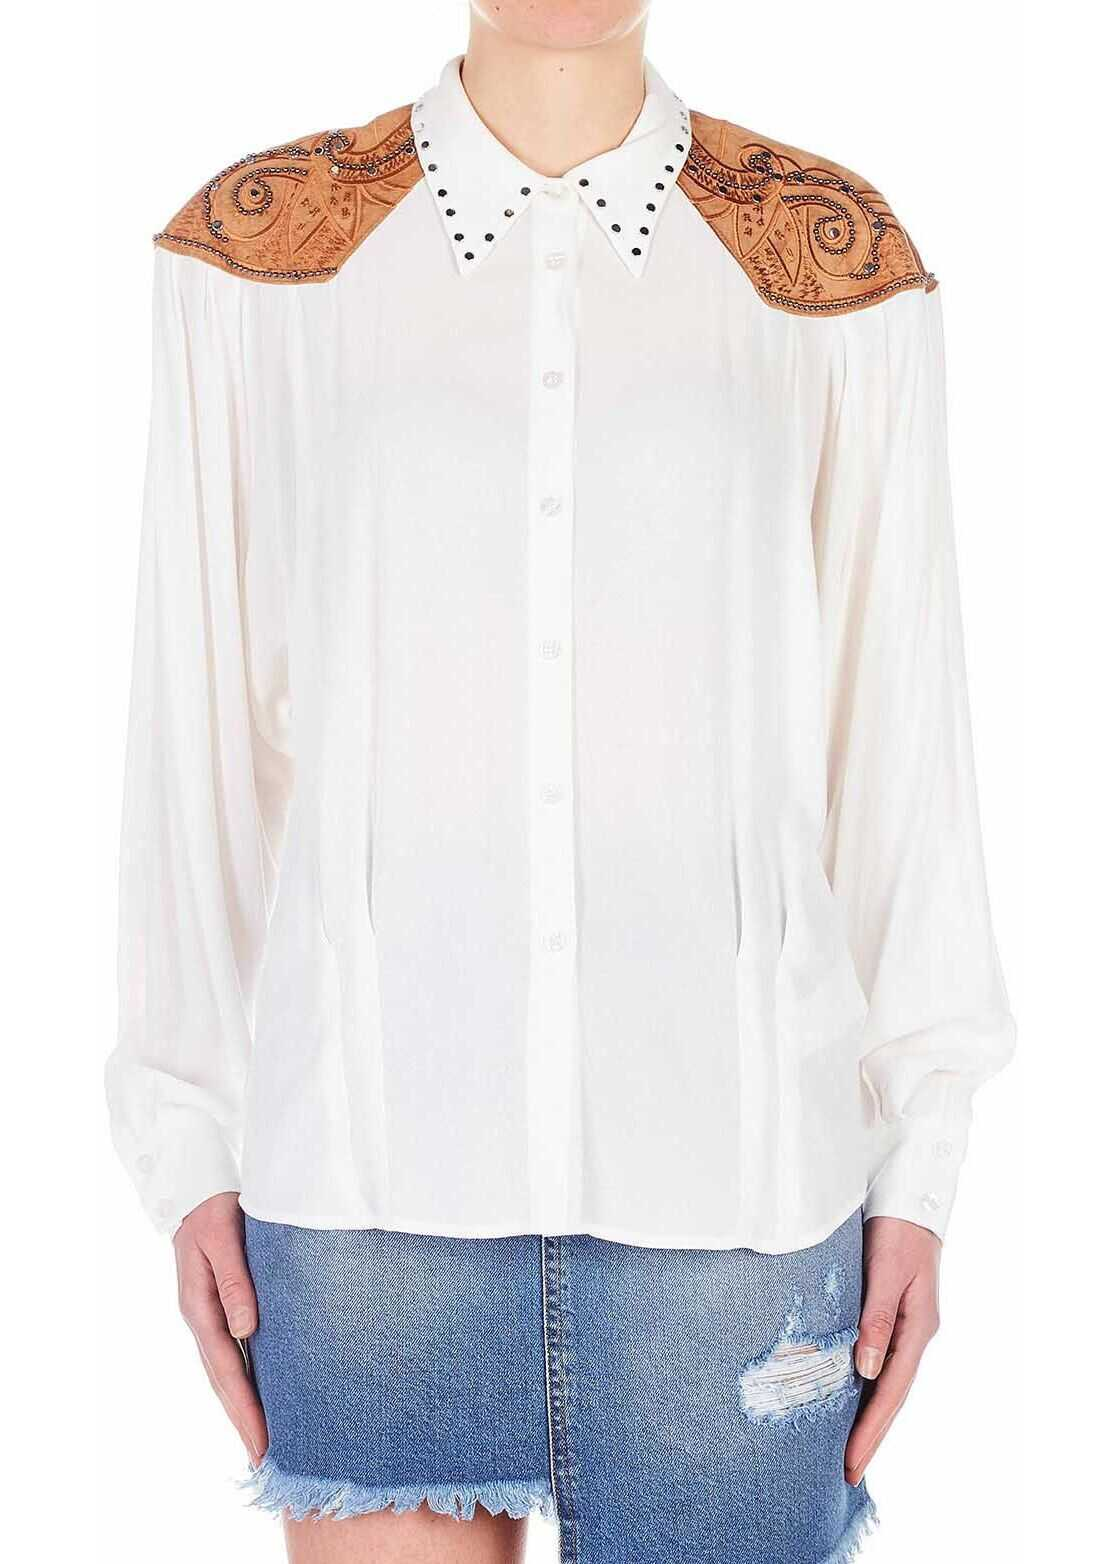 Silvian Heach Blouse with ethno embroidery